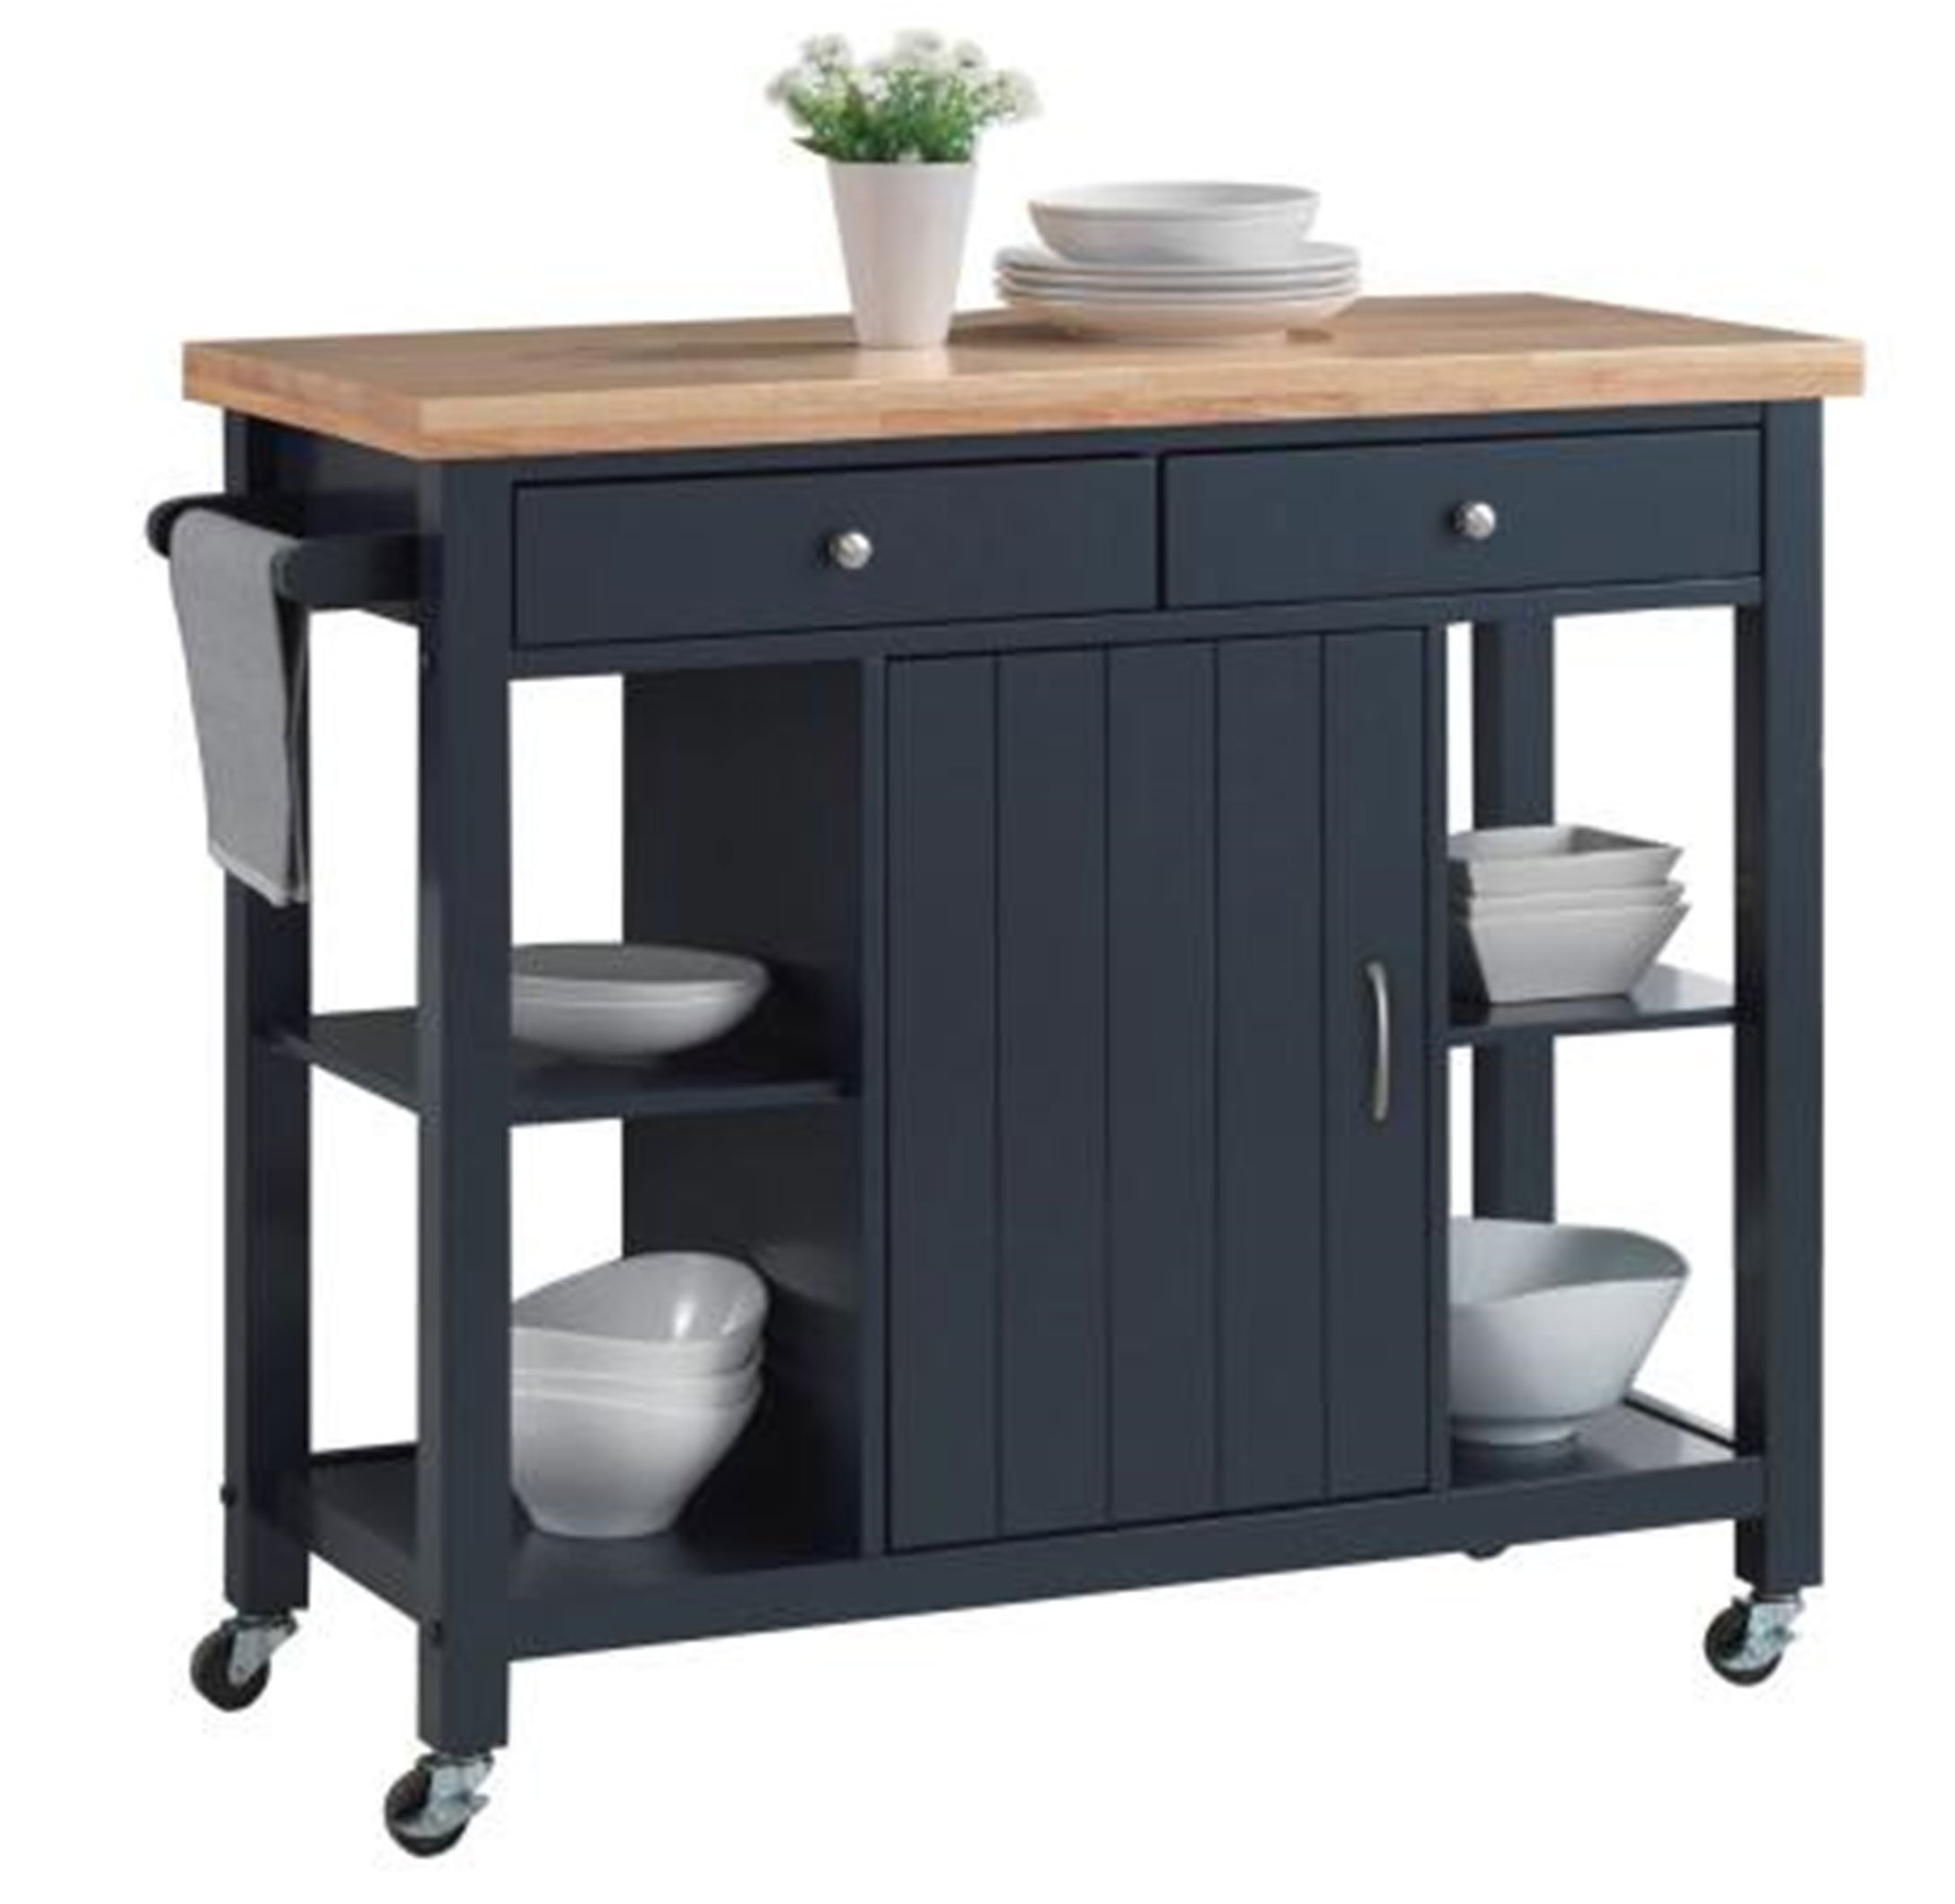 "Oliver and Smith - Nashville Collection - Large Mobile Kitchen Island Cart on Wheels - Navy Blue - Natural Butcher Block Top - 41"" W x 19"" L x 36"" H 102907-01blue"